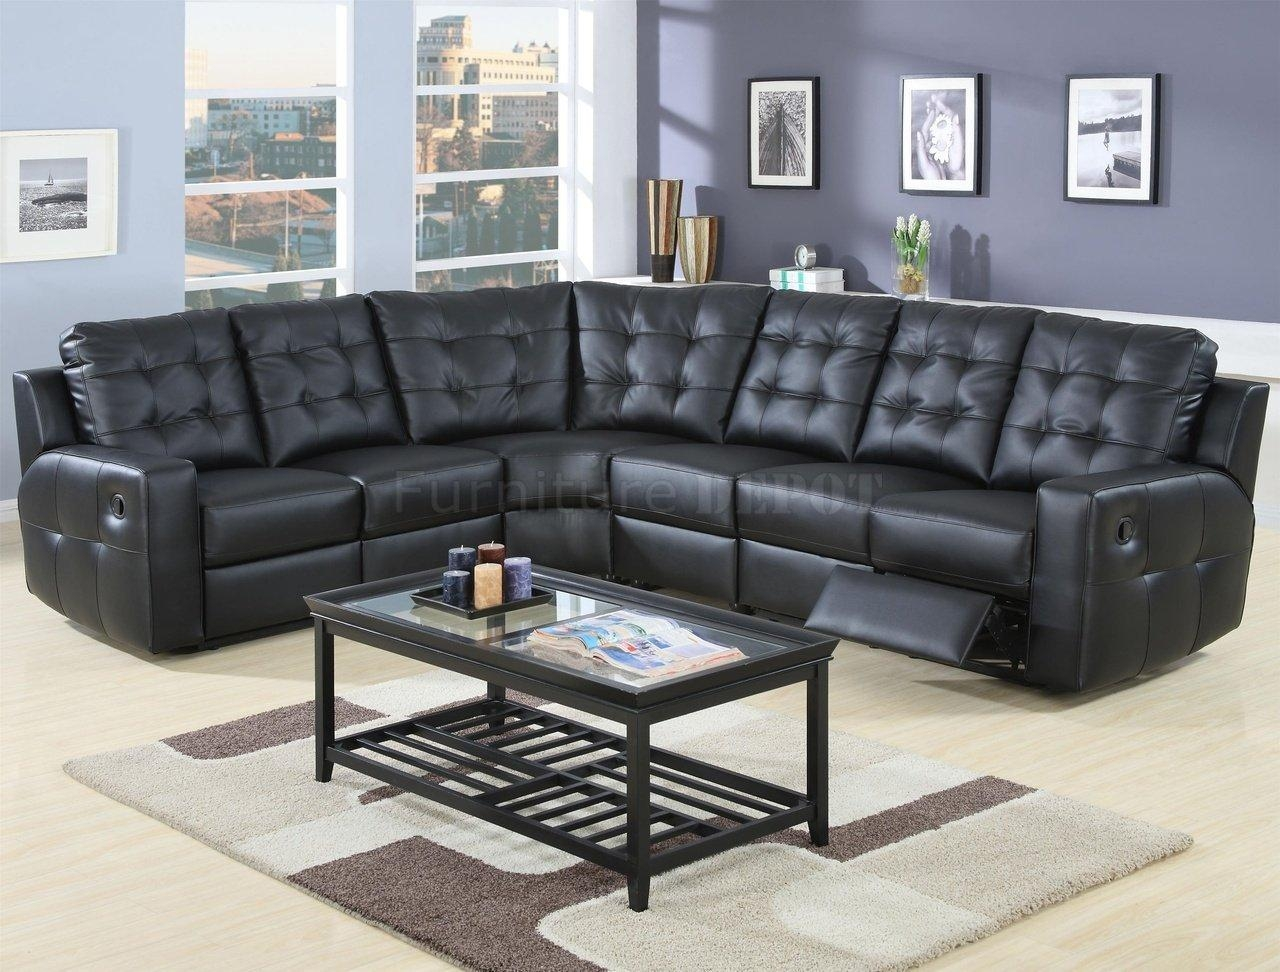 Are Lazy Boy Sofas Good – Leather Sectional Sofa Intended For Lazy Boy Leather Sectional (Image 2 of 20)